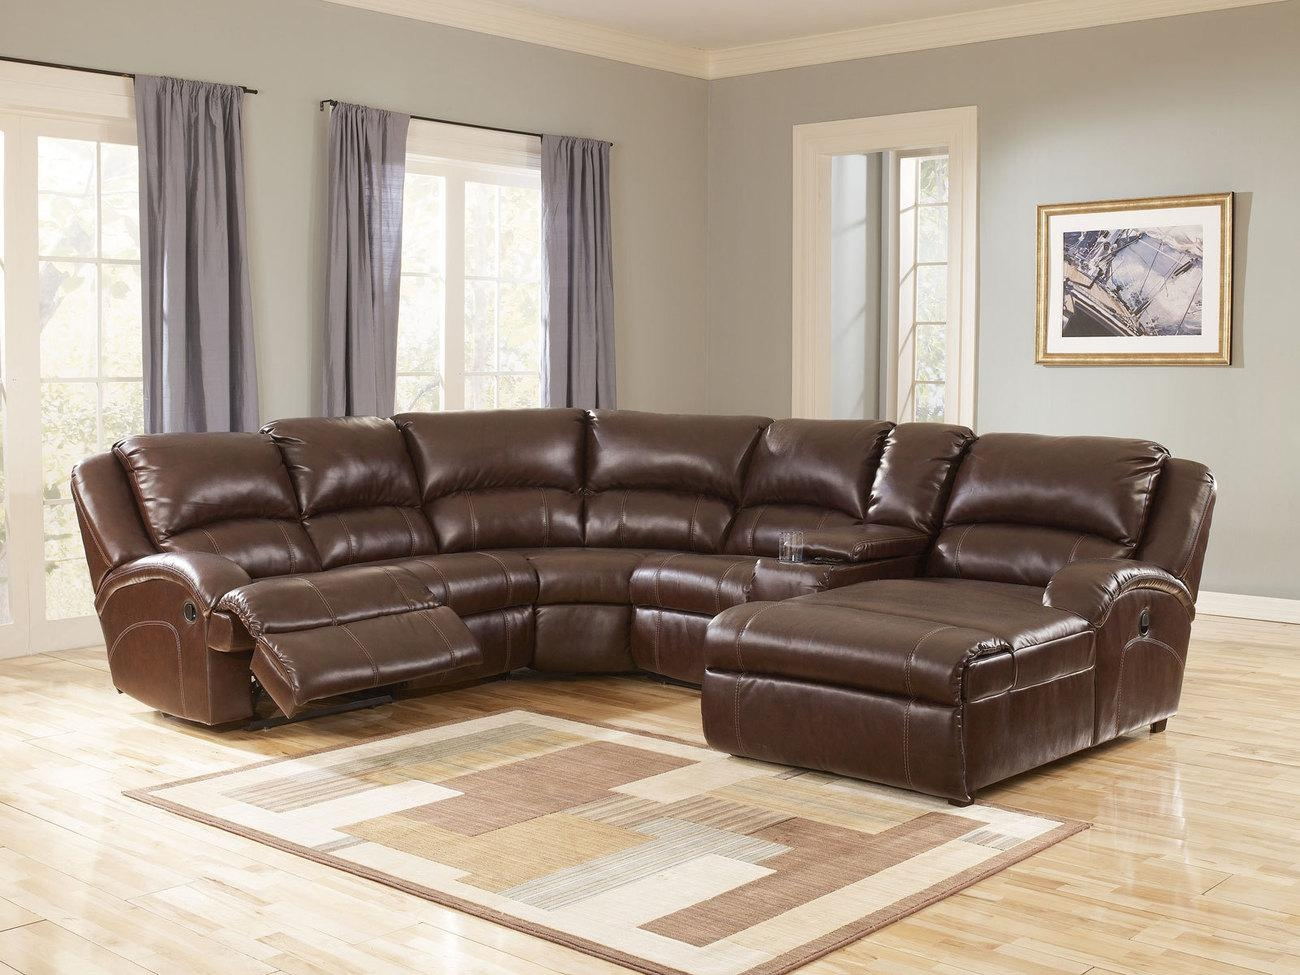 Epic Sectional Sleeper Sofa With Recliners 17 With Additional Regarding Slumberland Sofas (View 14 of 20)